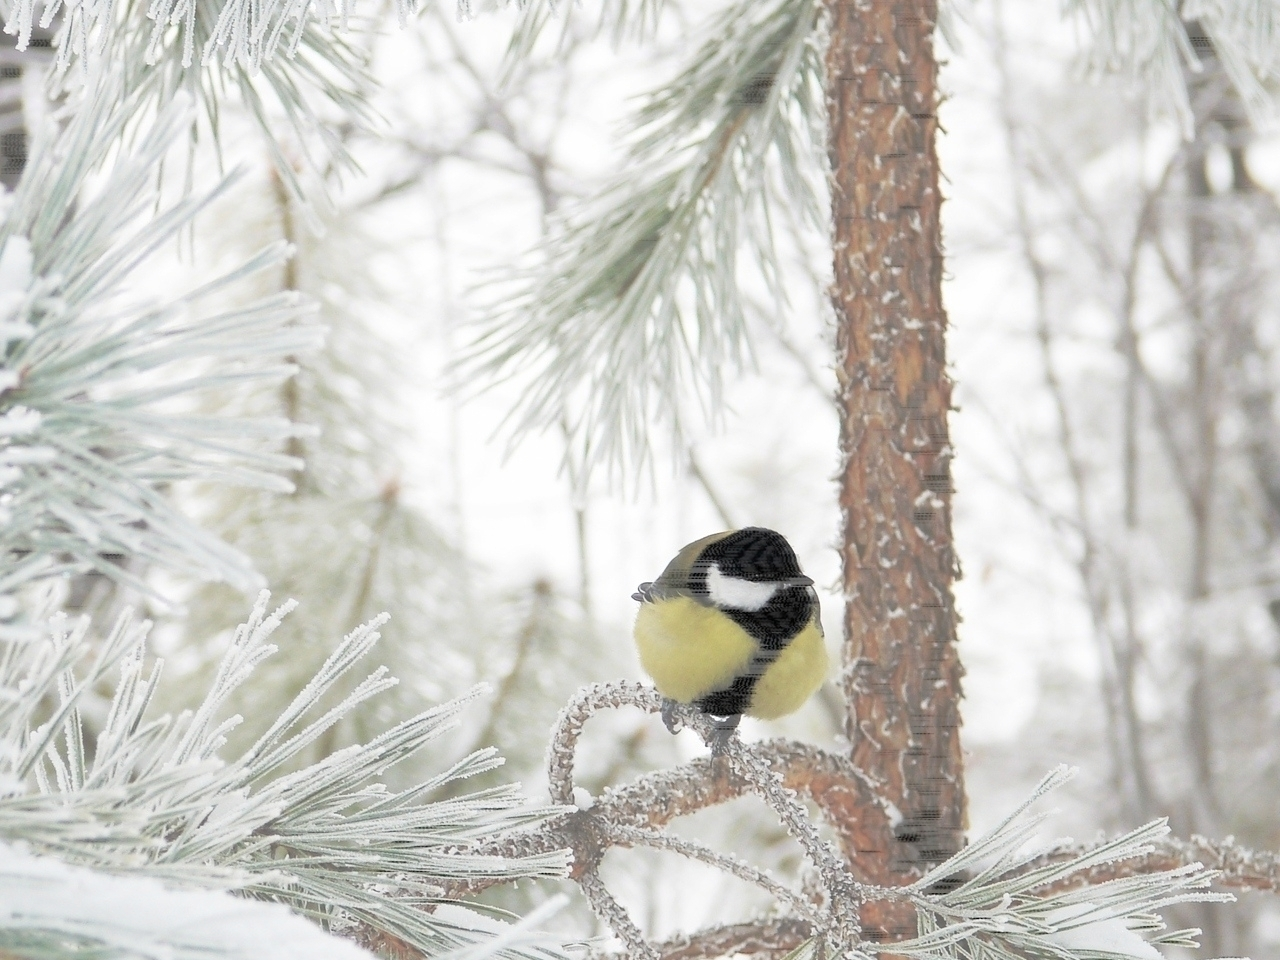 42307 download wallpaper Animals, Winter, Birds screensavers and pictures for free